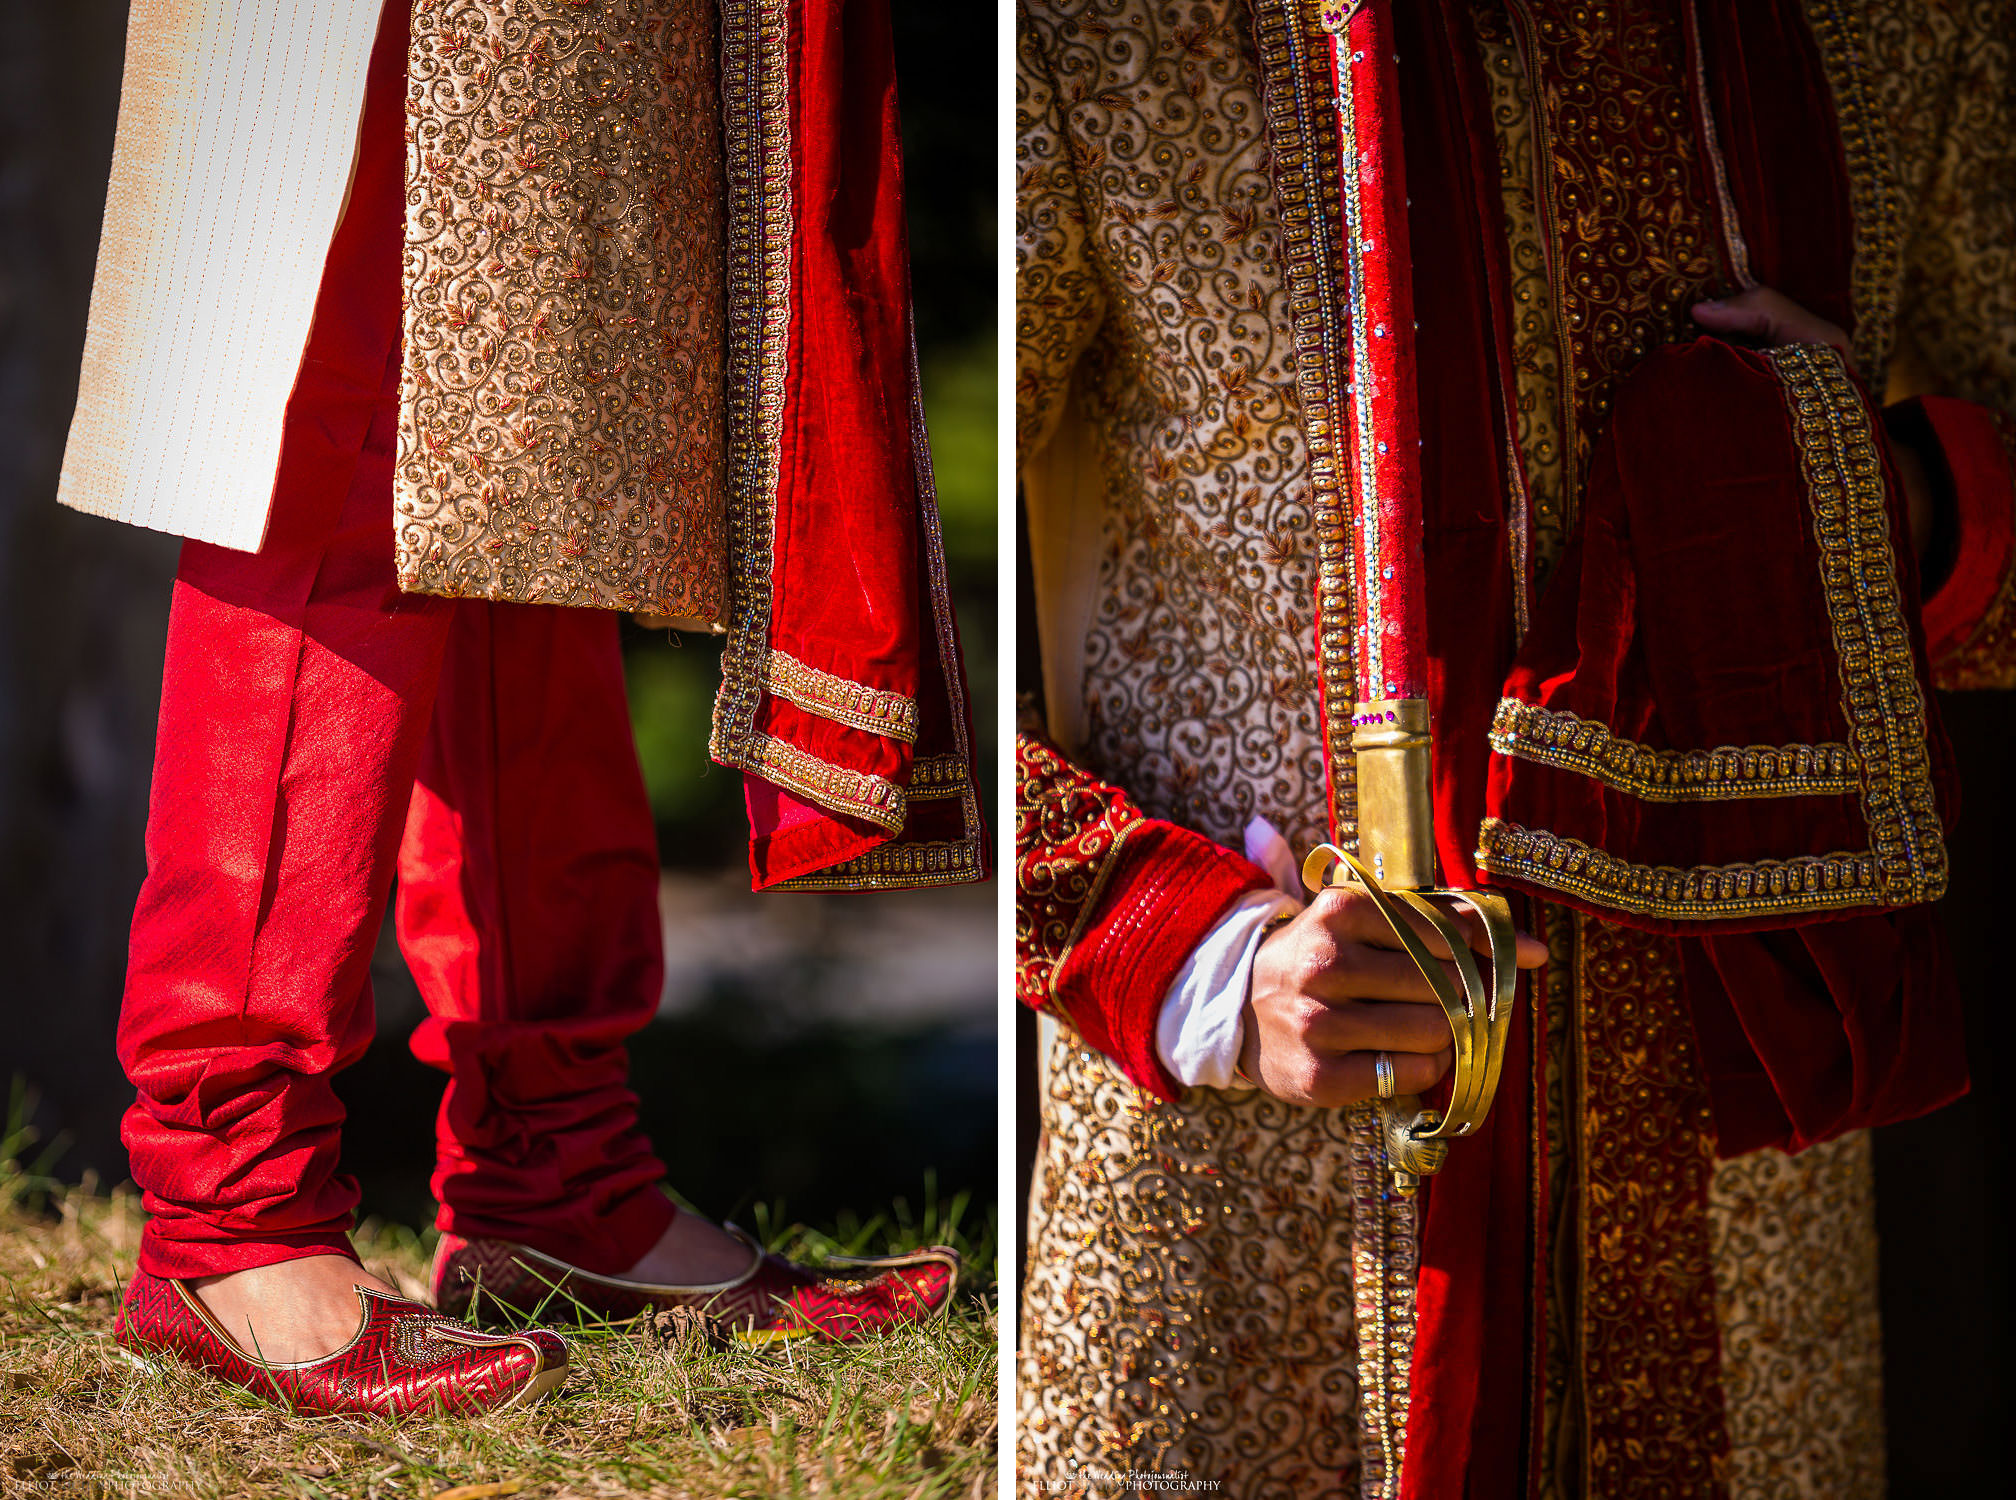 Indian groom dress detail - shoes and sword. Photo by North East based wedding photographer Elliot Nichol.